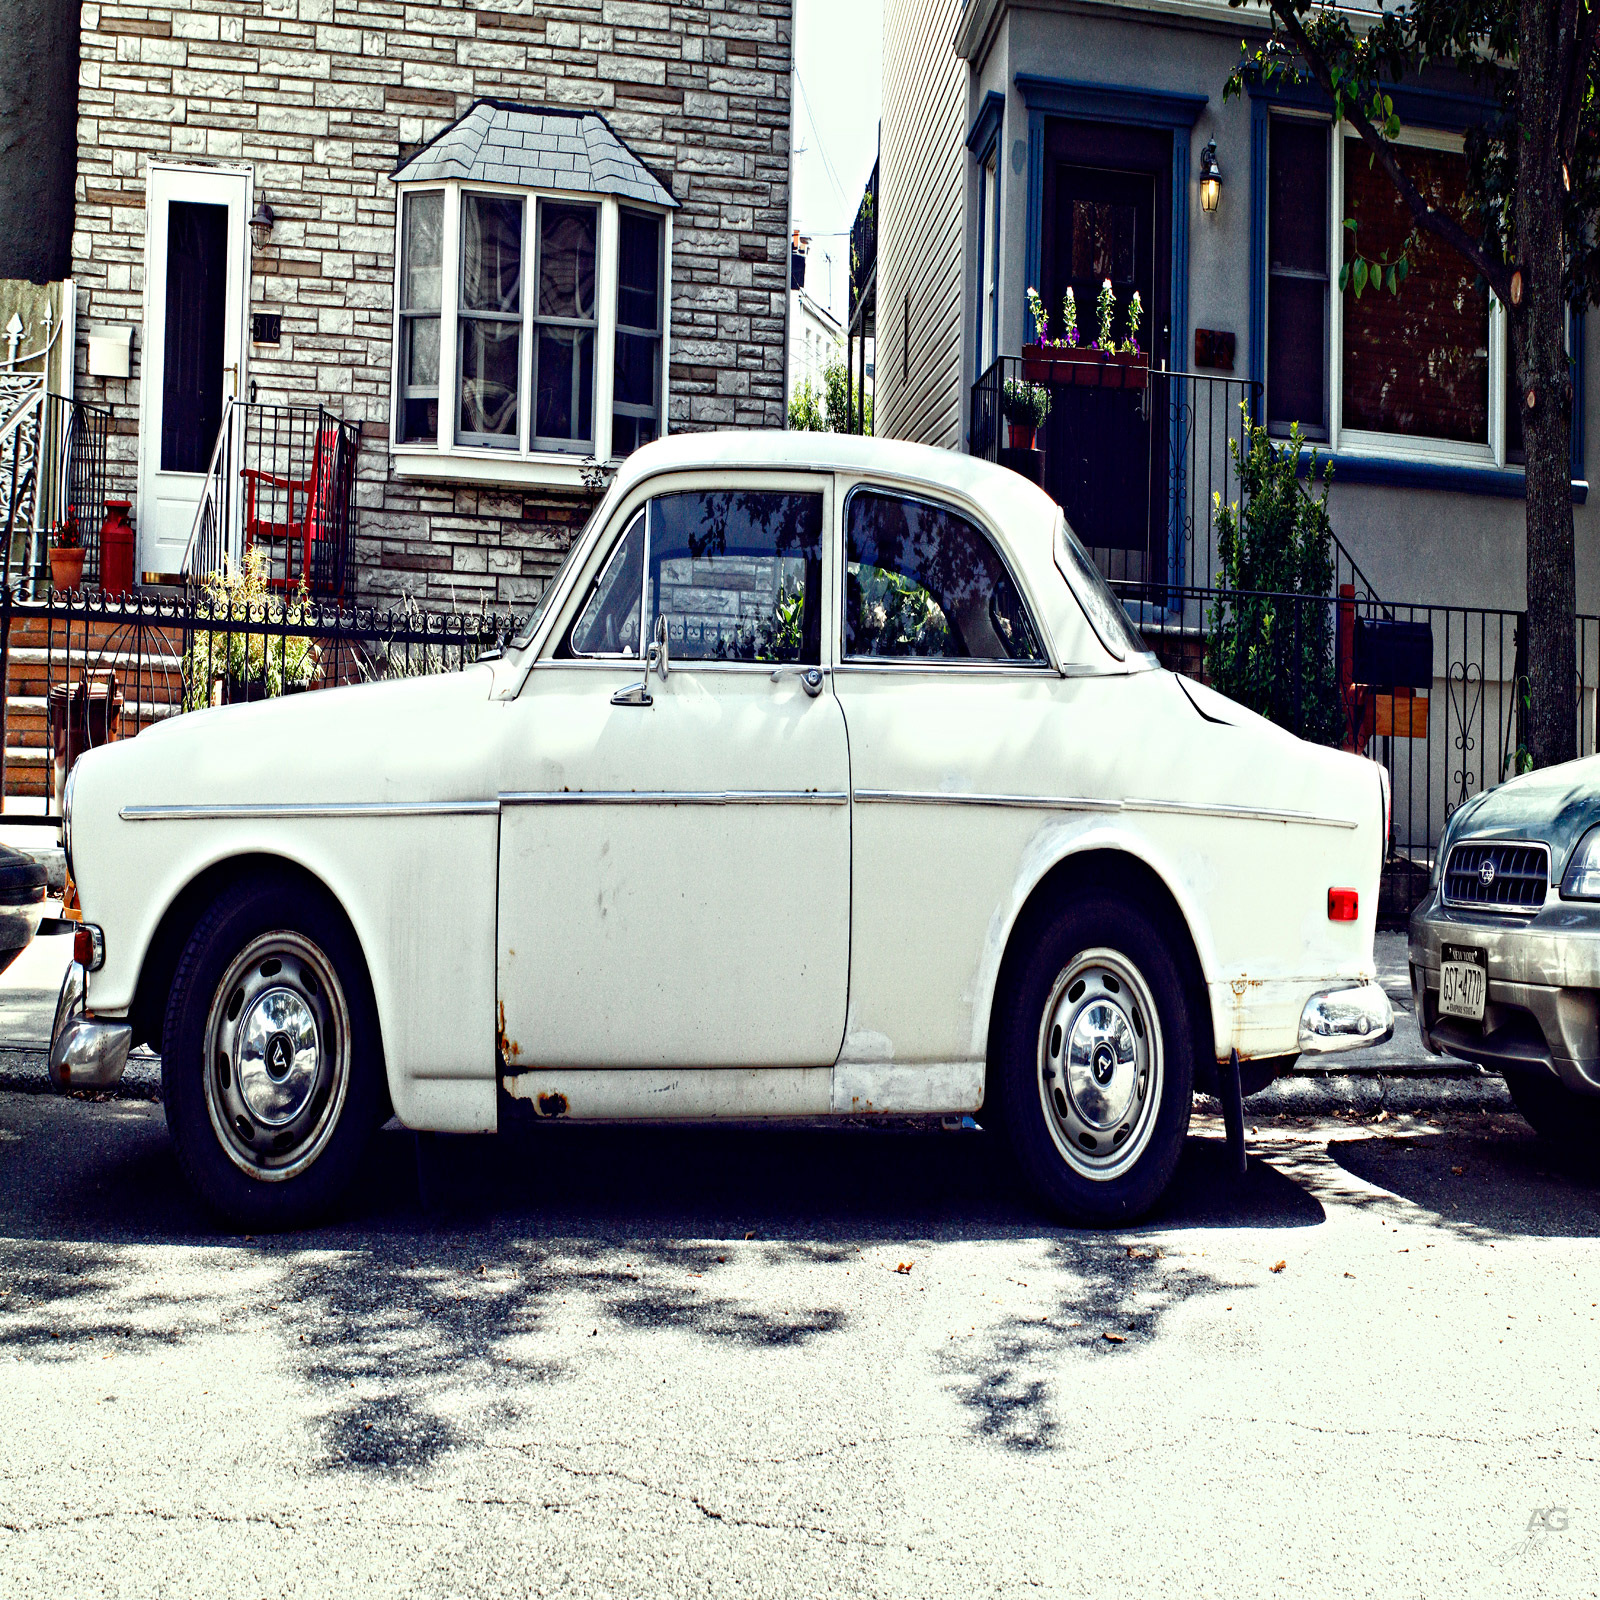 whiteVolvoCarFrom70sInBrooklynSideView_squished_1600